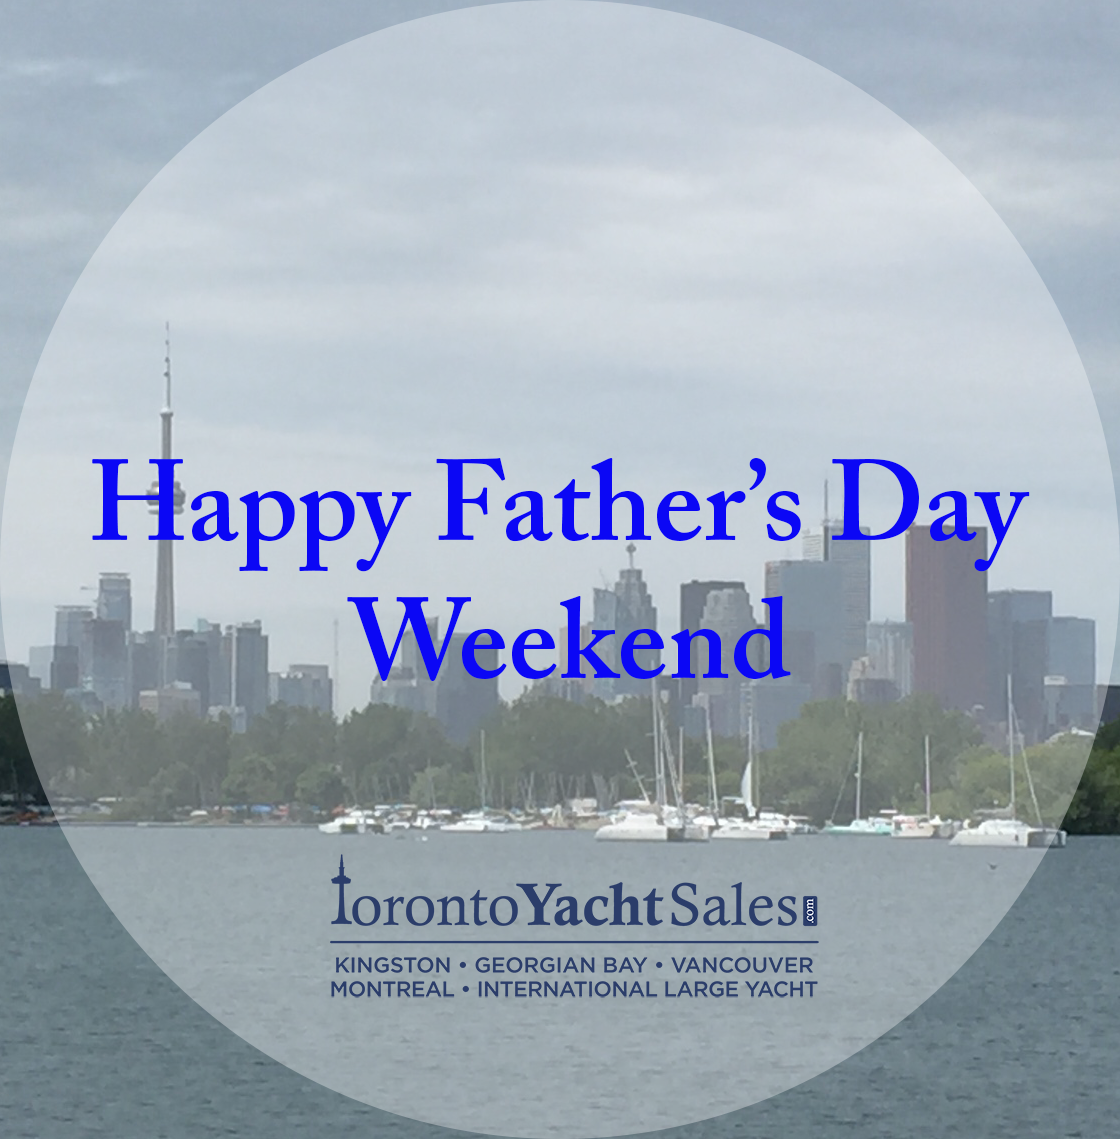 Toronto Yacht Sales Wishing You A Happy Father S Day Weekend